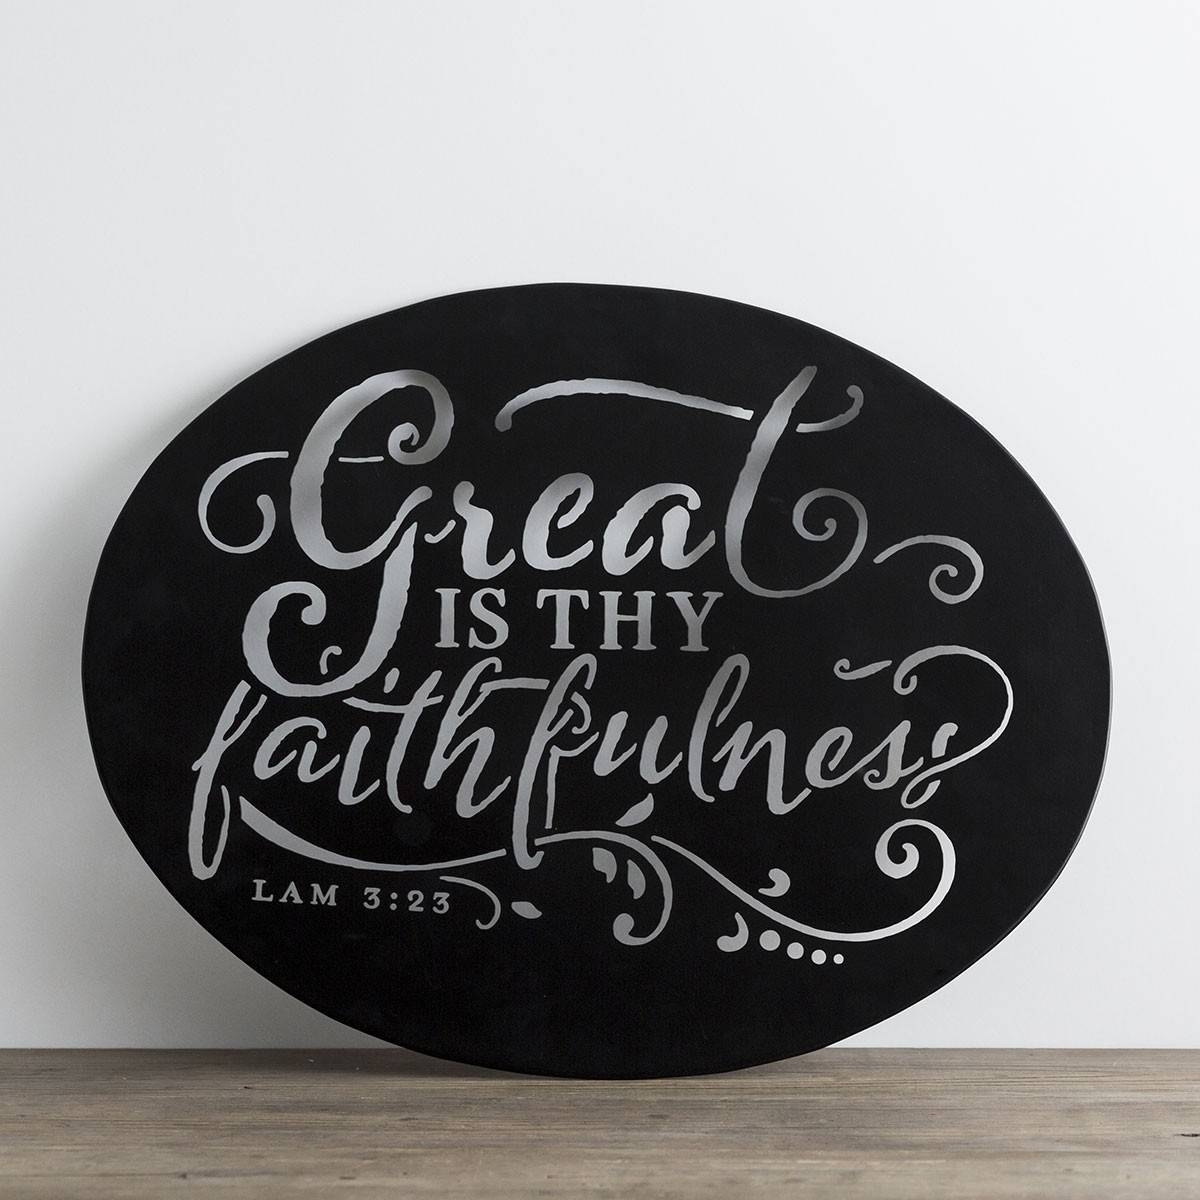 Christian Metal Wall Art – Great Is Thy Faithfulness | Dayspring With Recent Christian Metal Wall Art (View 12 of 20)